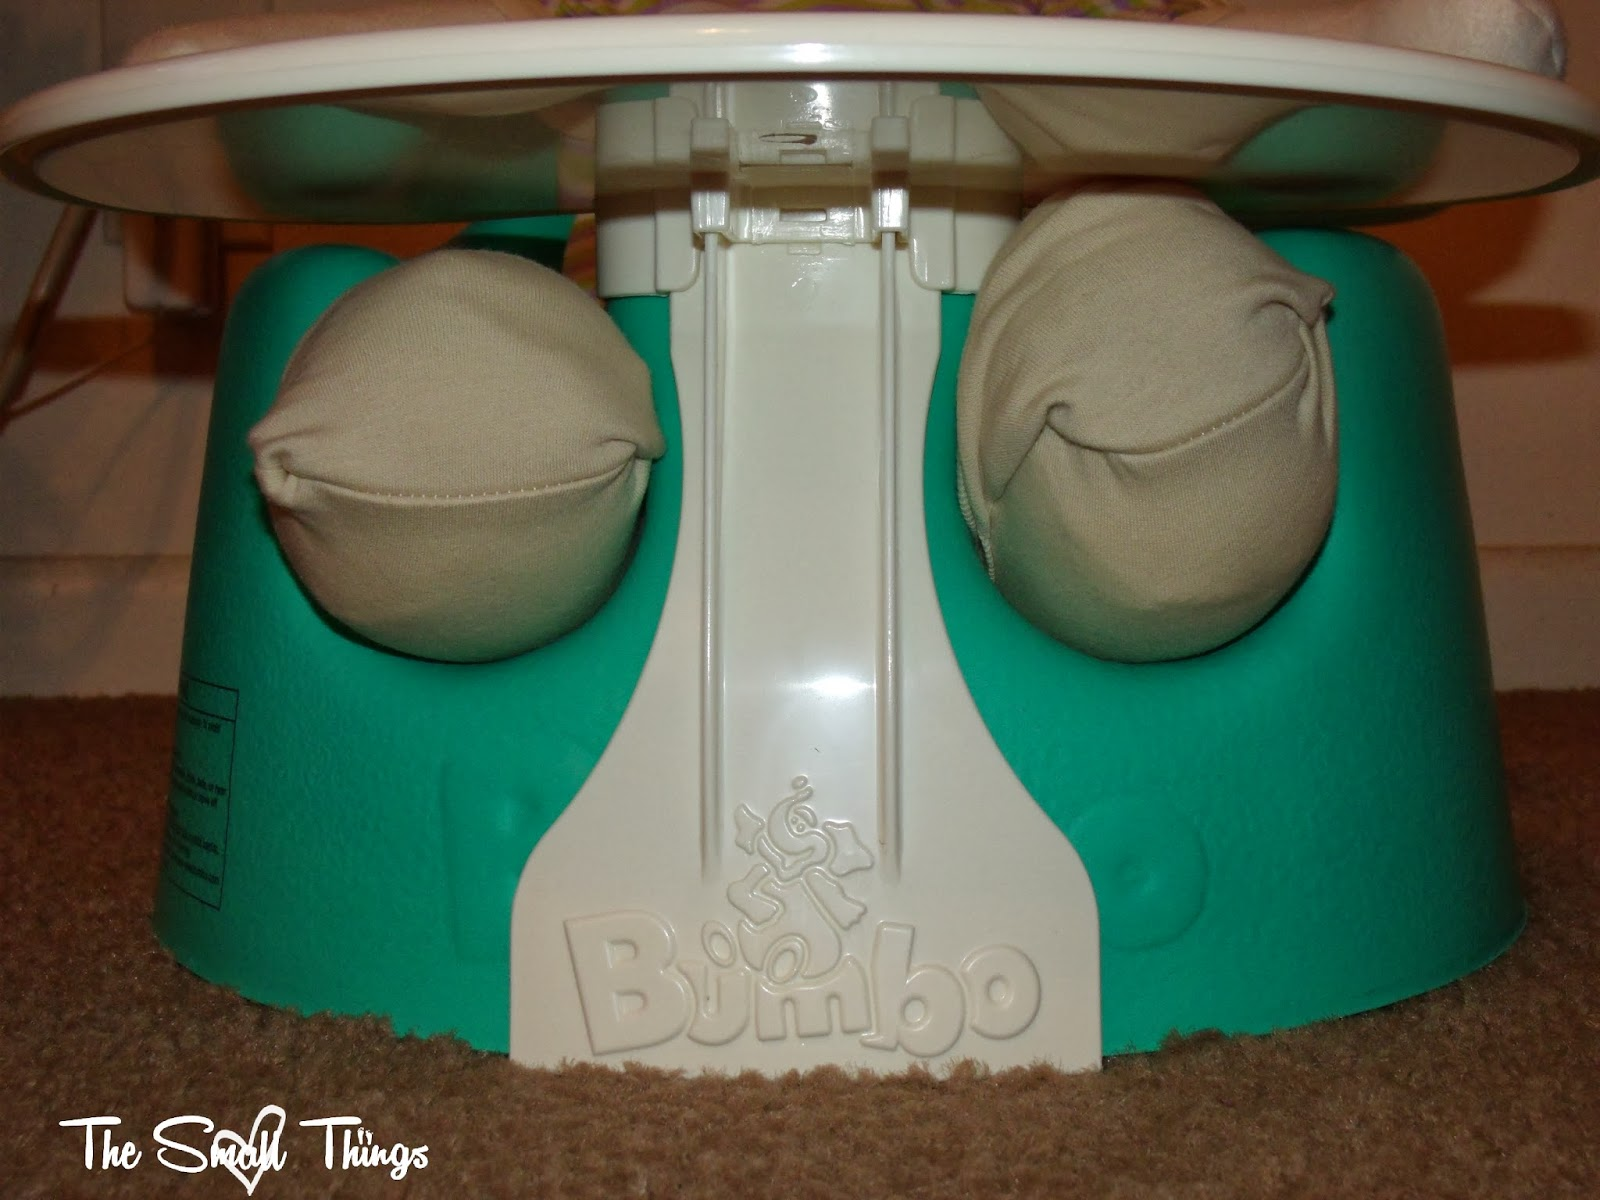 Bumbo Floor Seat and Play Tray ReviewGiveaway GiftGuide